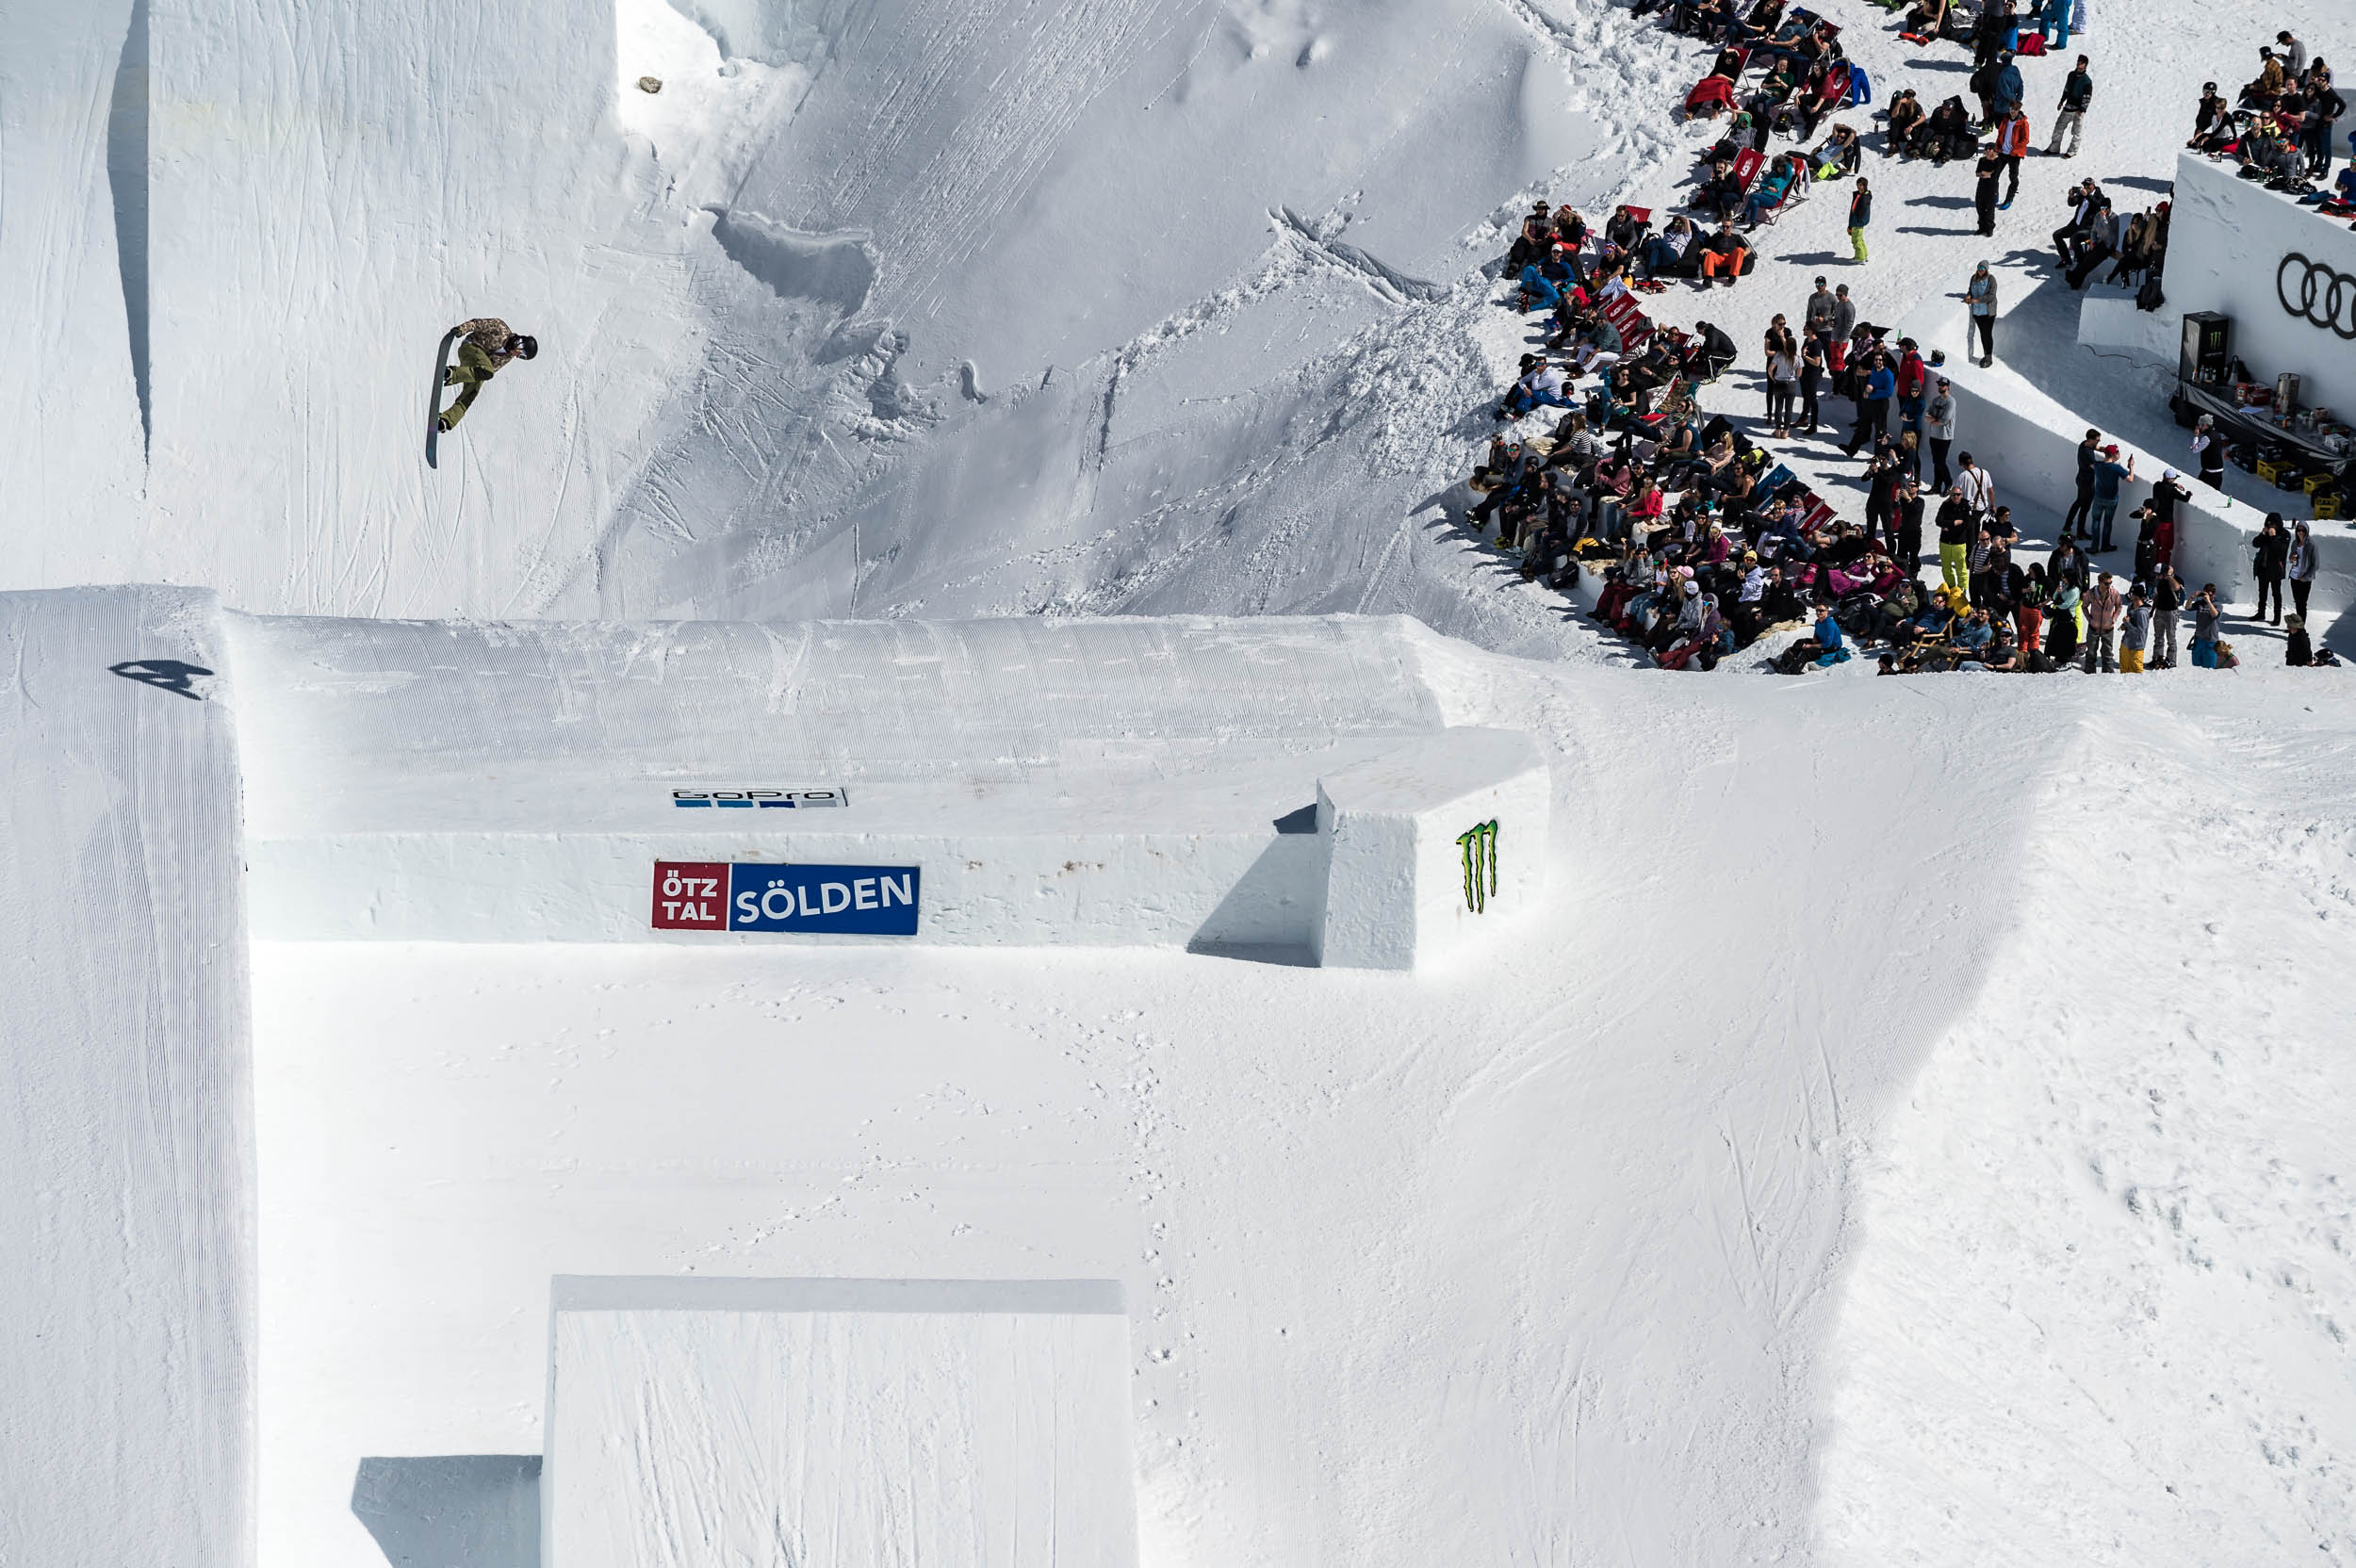 Clemens Millauer winning the Snowboard Big Air finals at The Audi Nines 2018